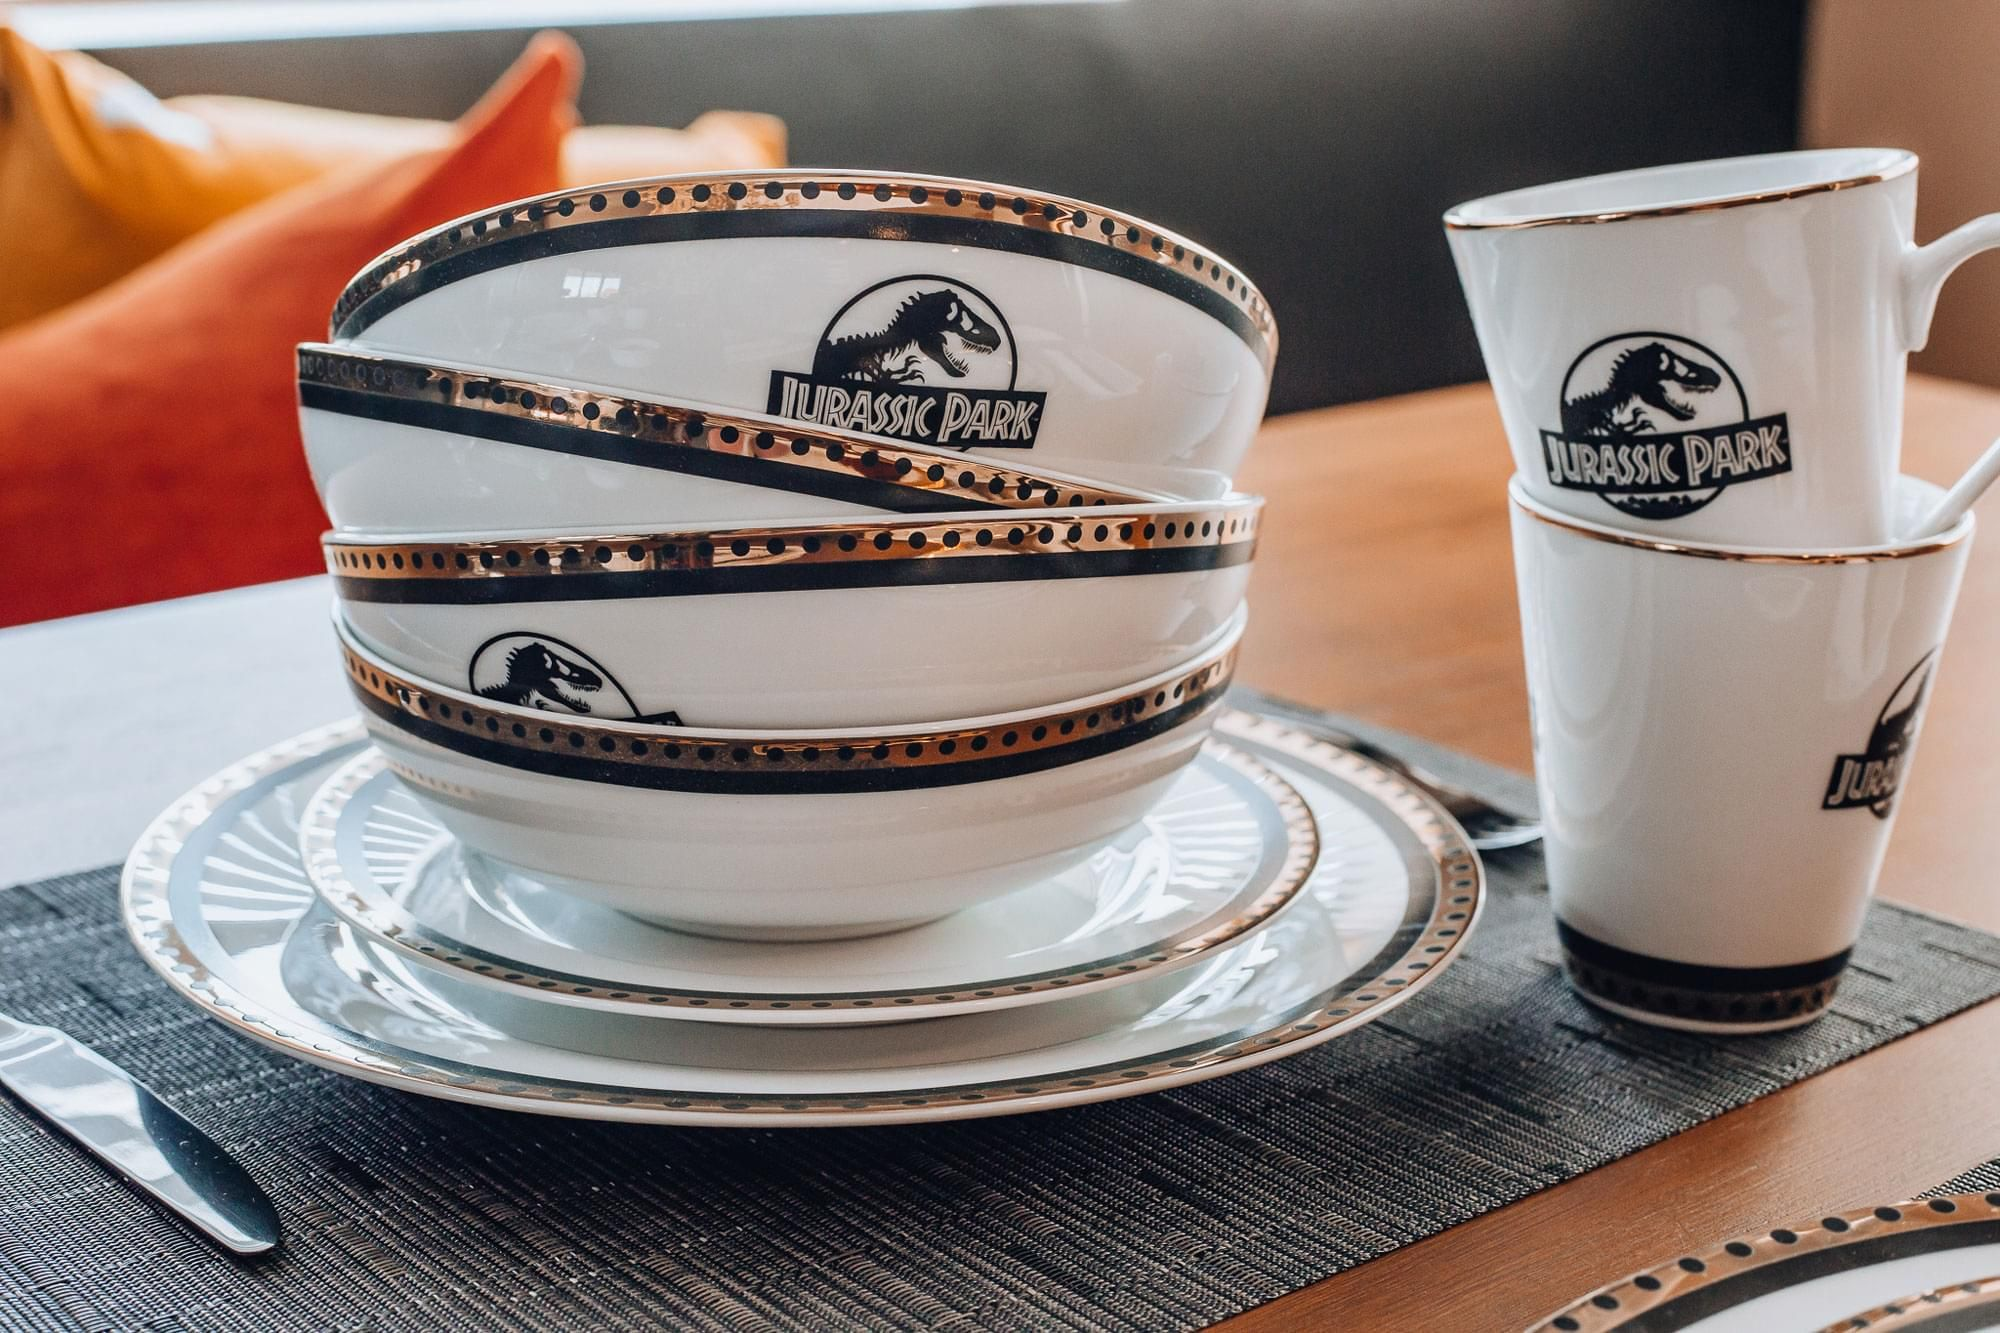 Jurassic Park Replica Dinnerware Set Available At Toynk.com